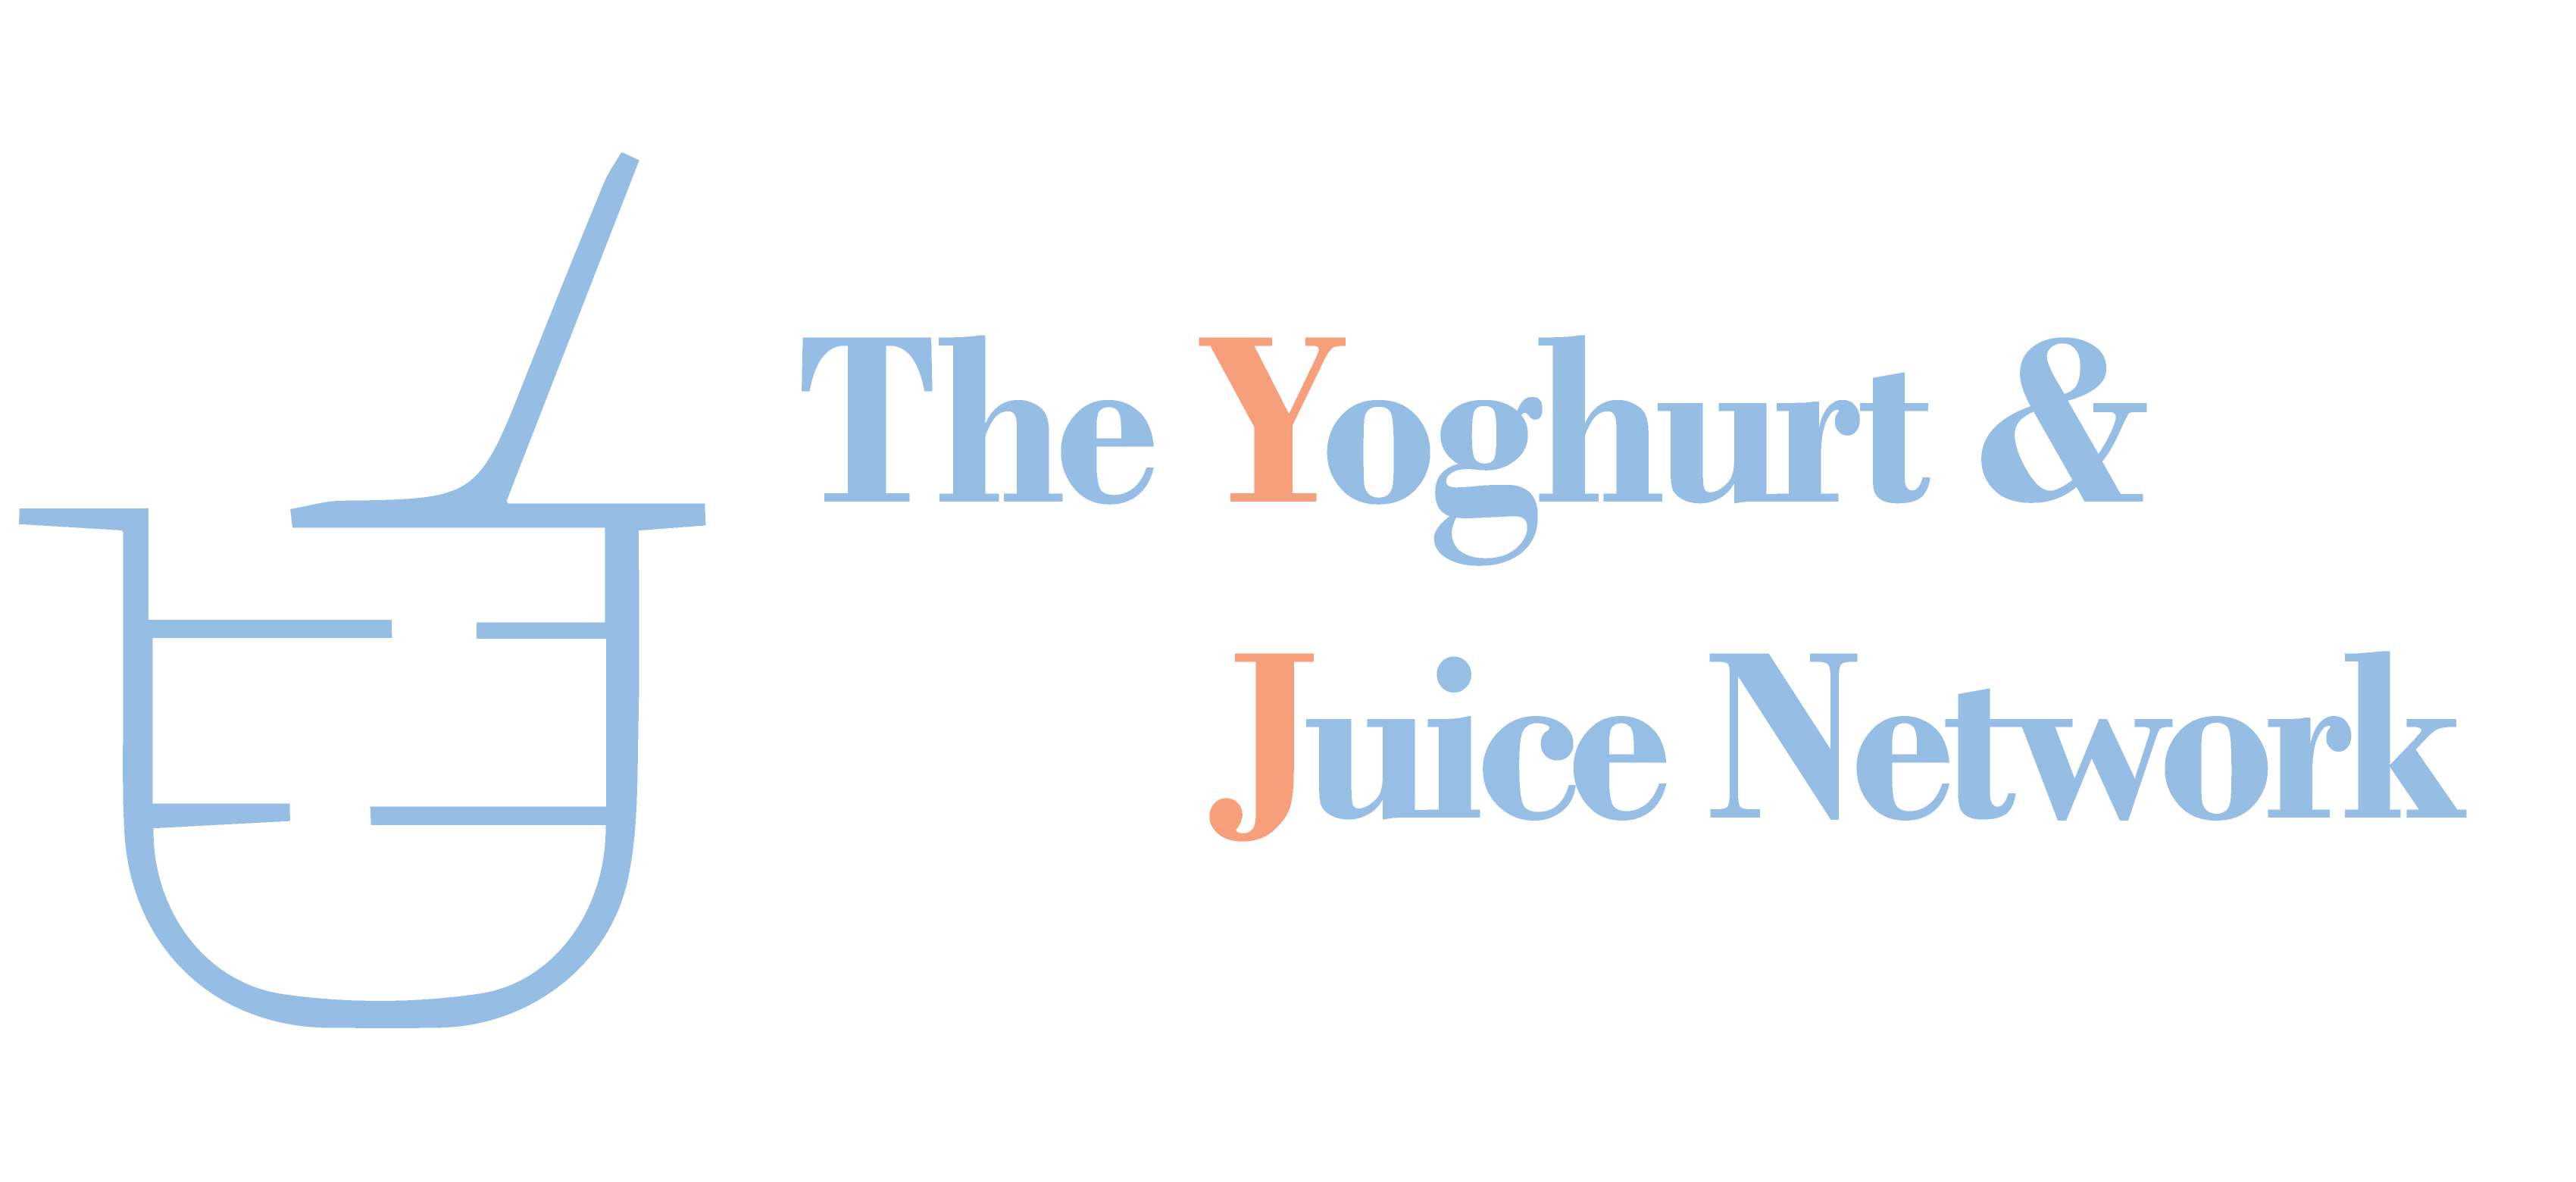 The Yoghurt & Juice Network